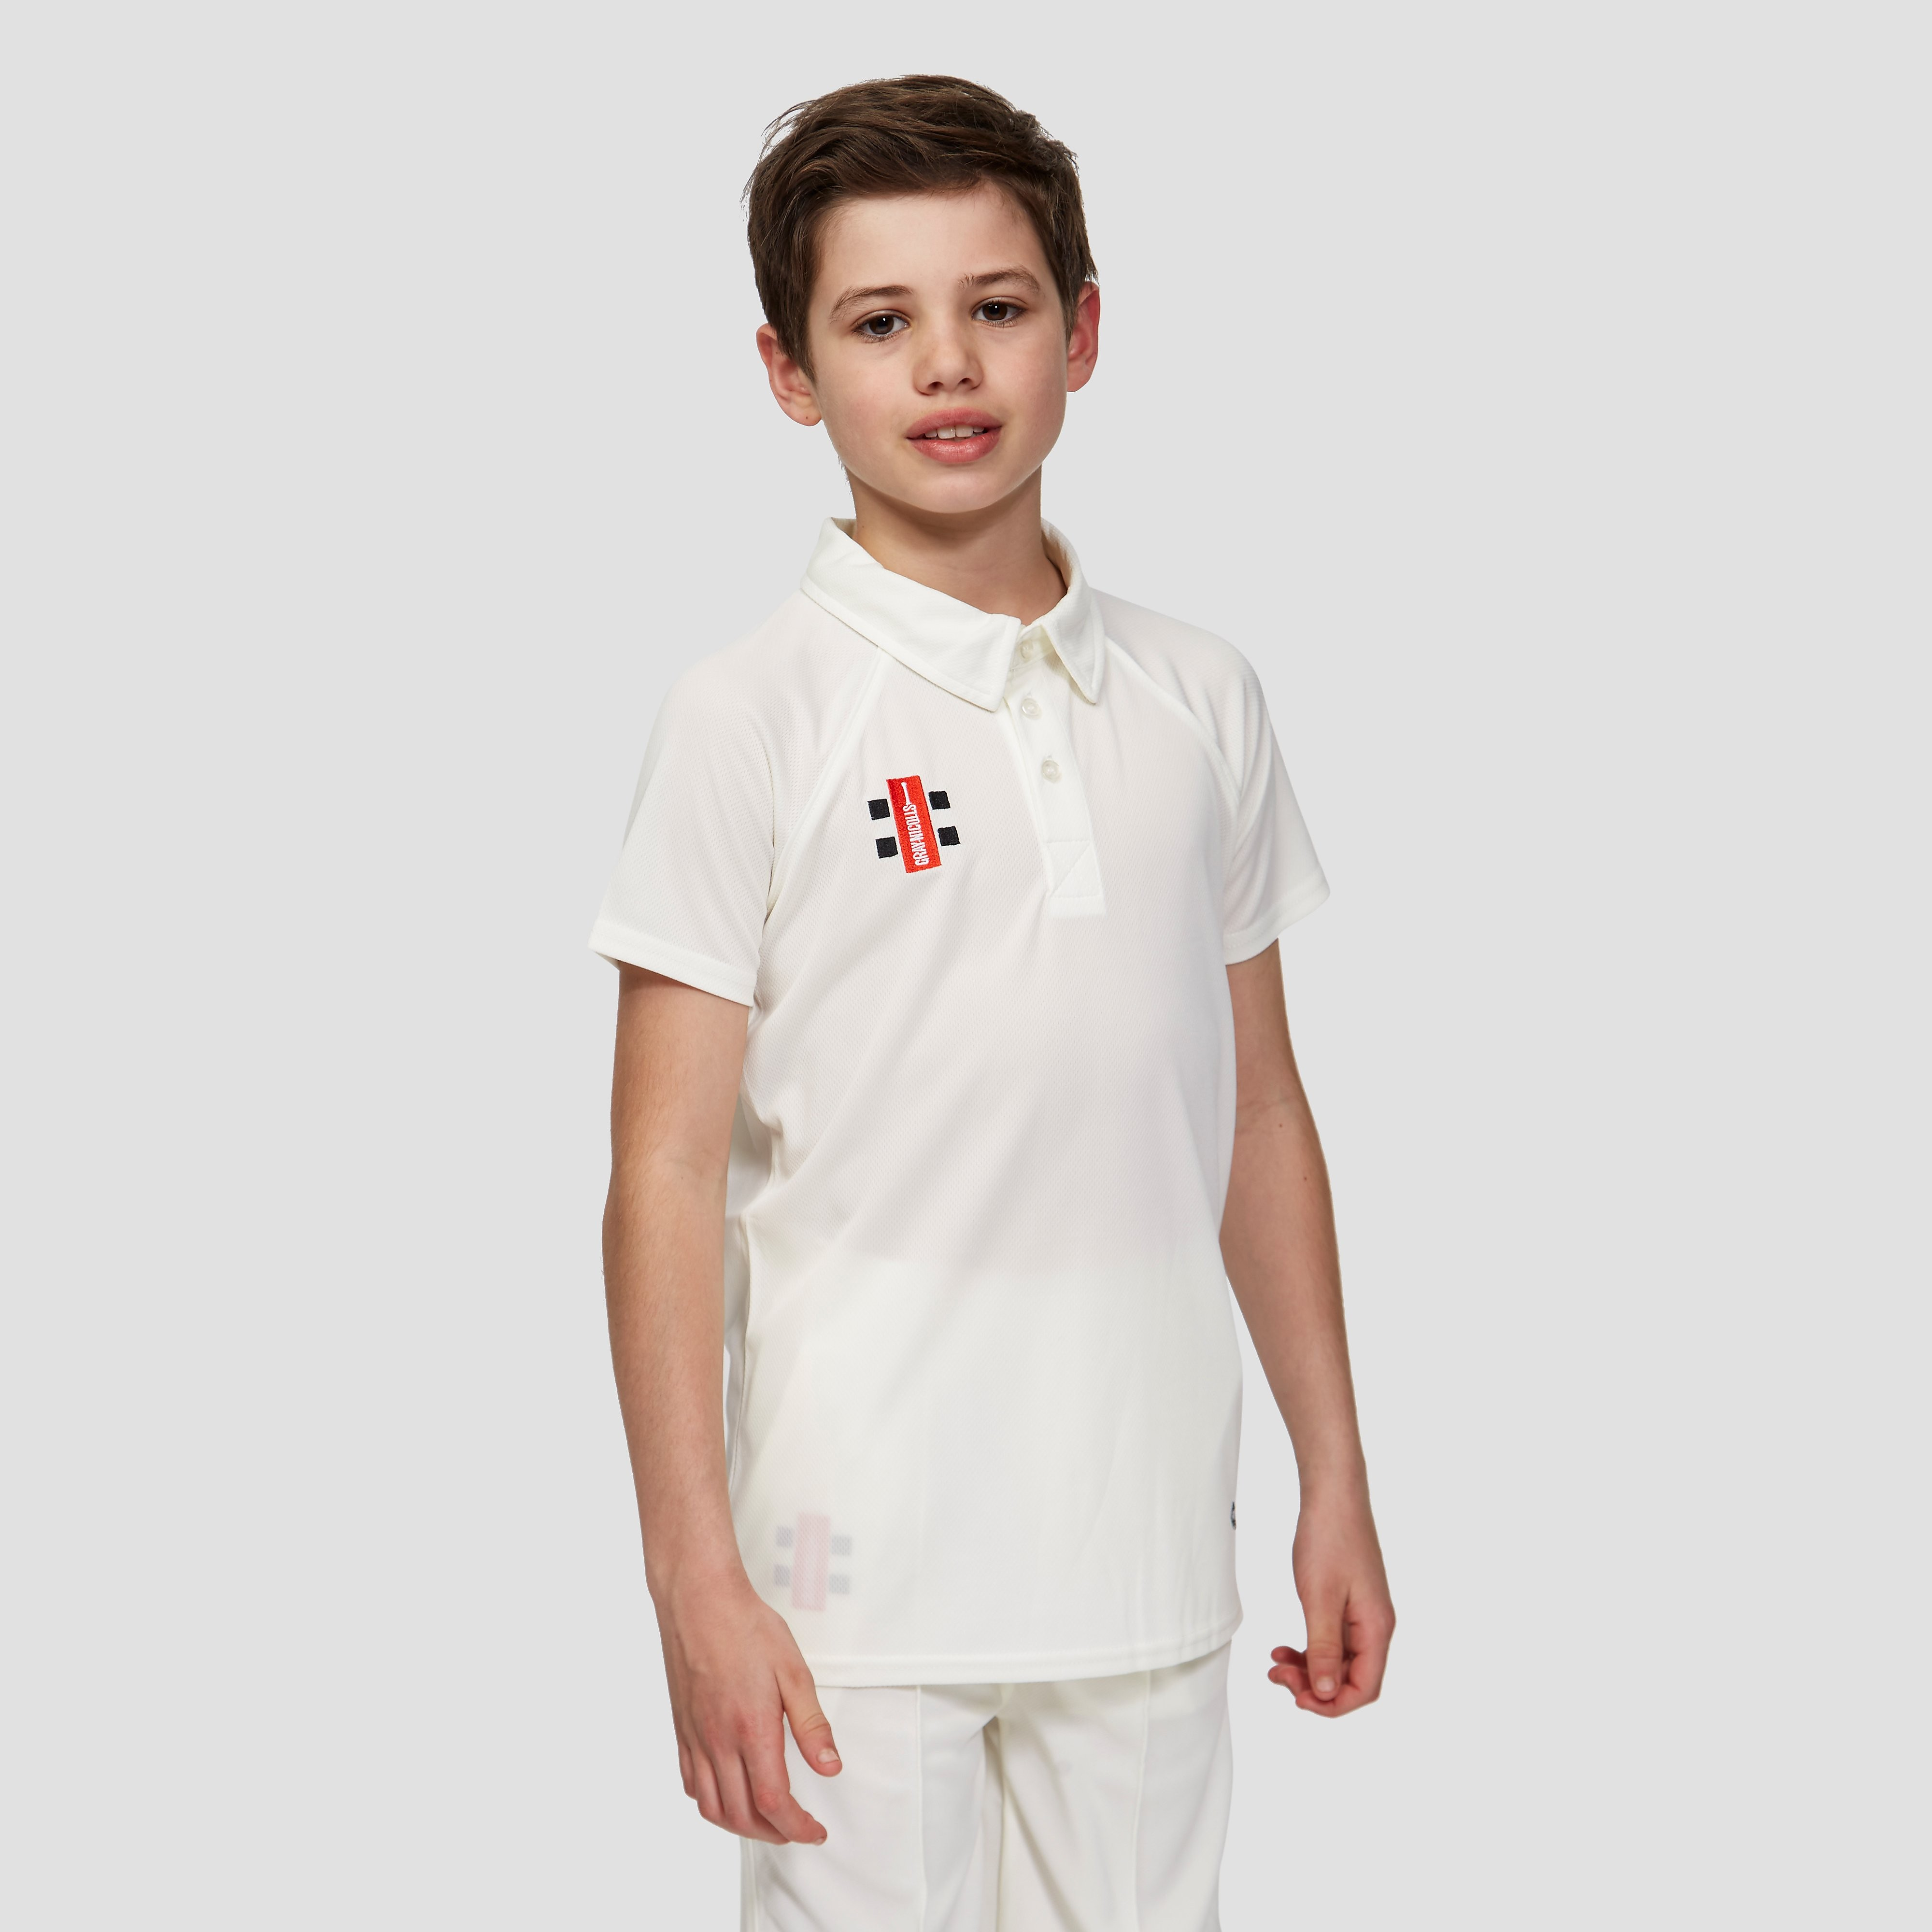 Gray Nicolls Matrix Short Sleeve Junior Cricket Polo